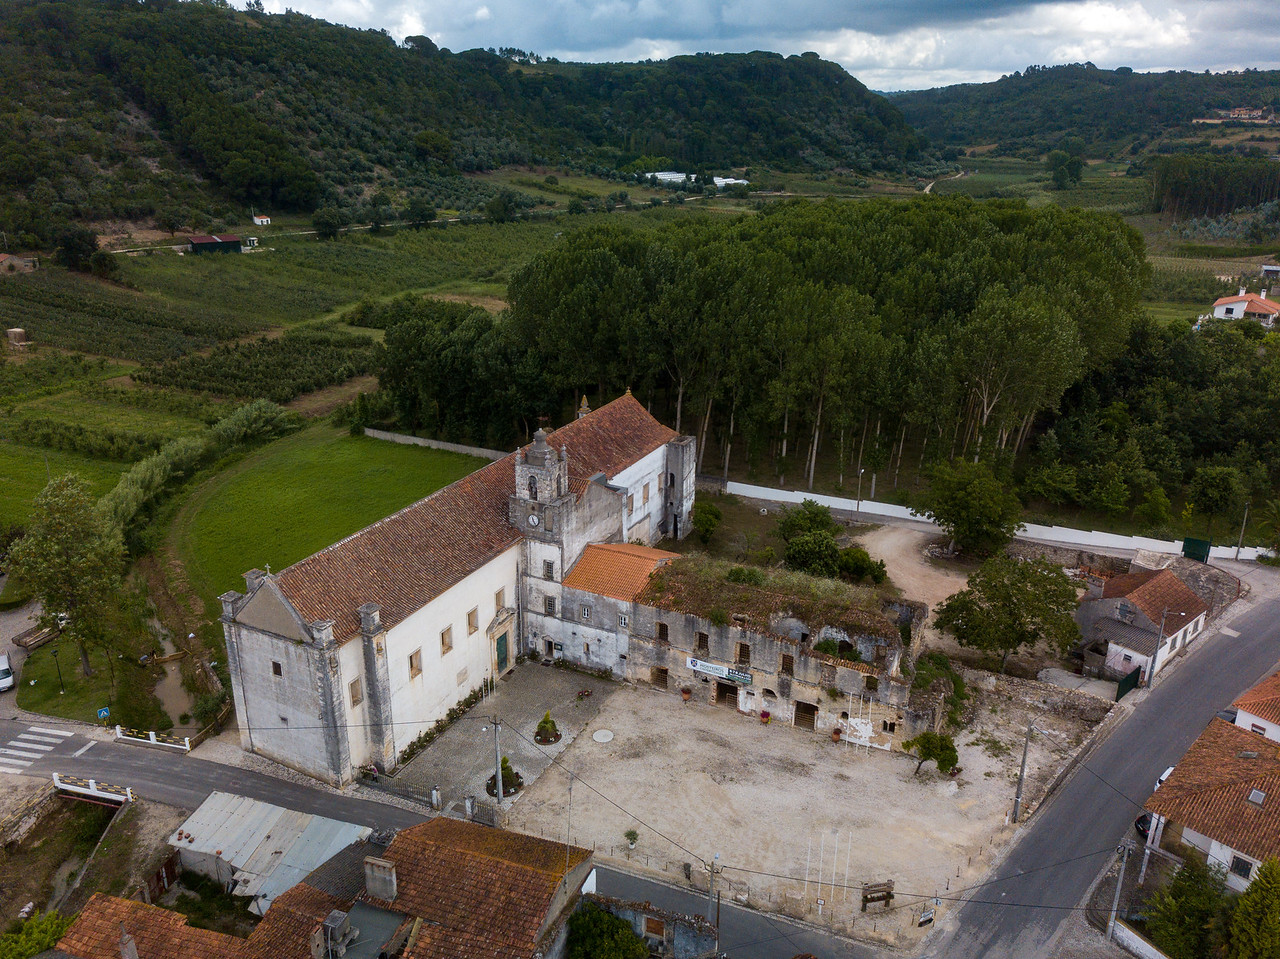 Drone Shot of Santa Maria Monastery of Coz, Portugal